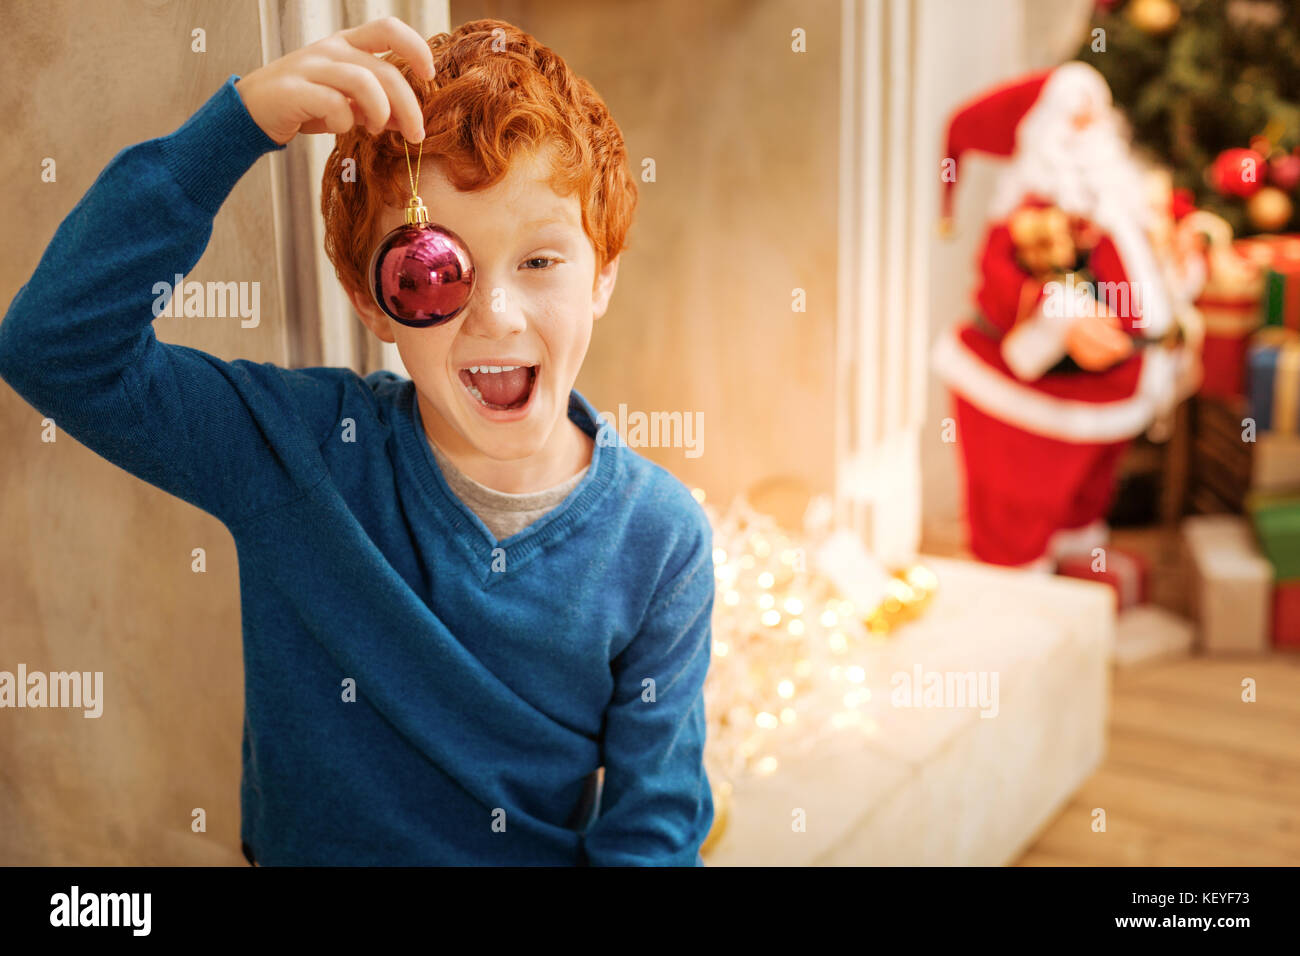 Funny redhead boy making funny faces with christmas decorative ball - Stock  Image